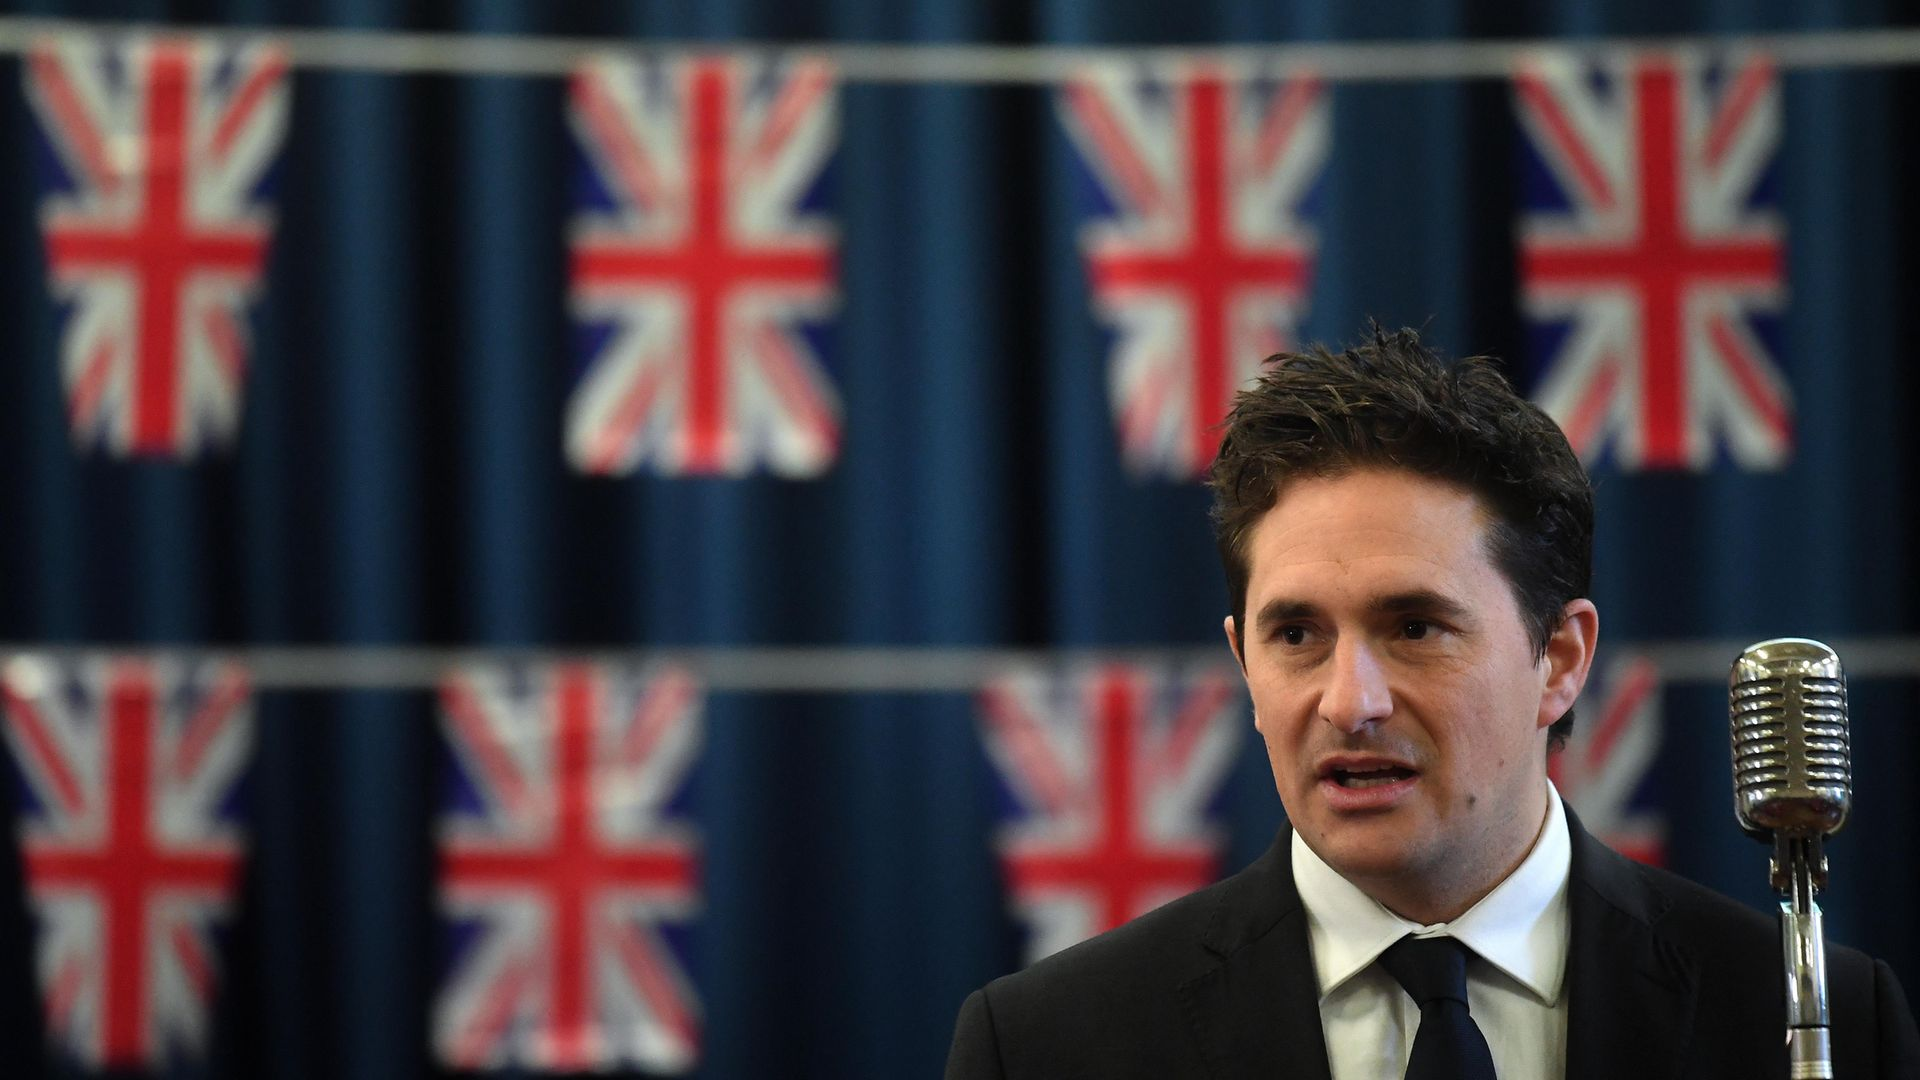 Veterans Minister Johnny Mercer speaks to pupils at Sandhurst Primary School in south east London, to raise awareness of the 75th anniversaries of VE and VJ day last year. - Credit: PA